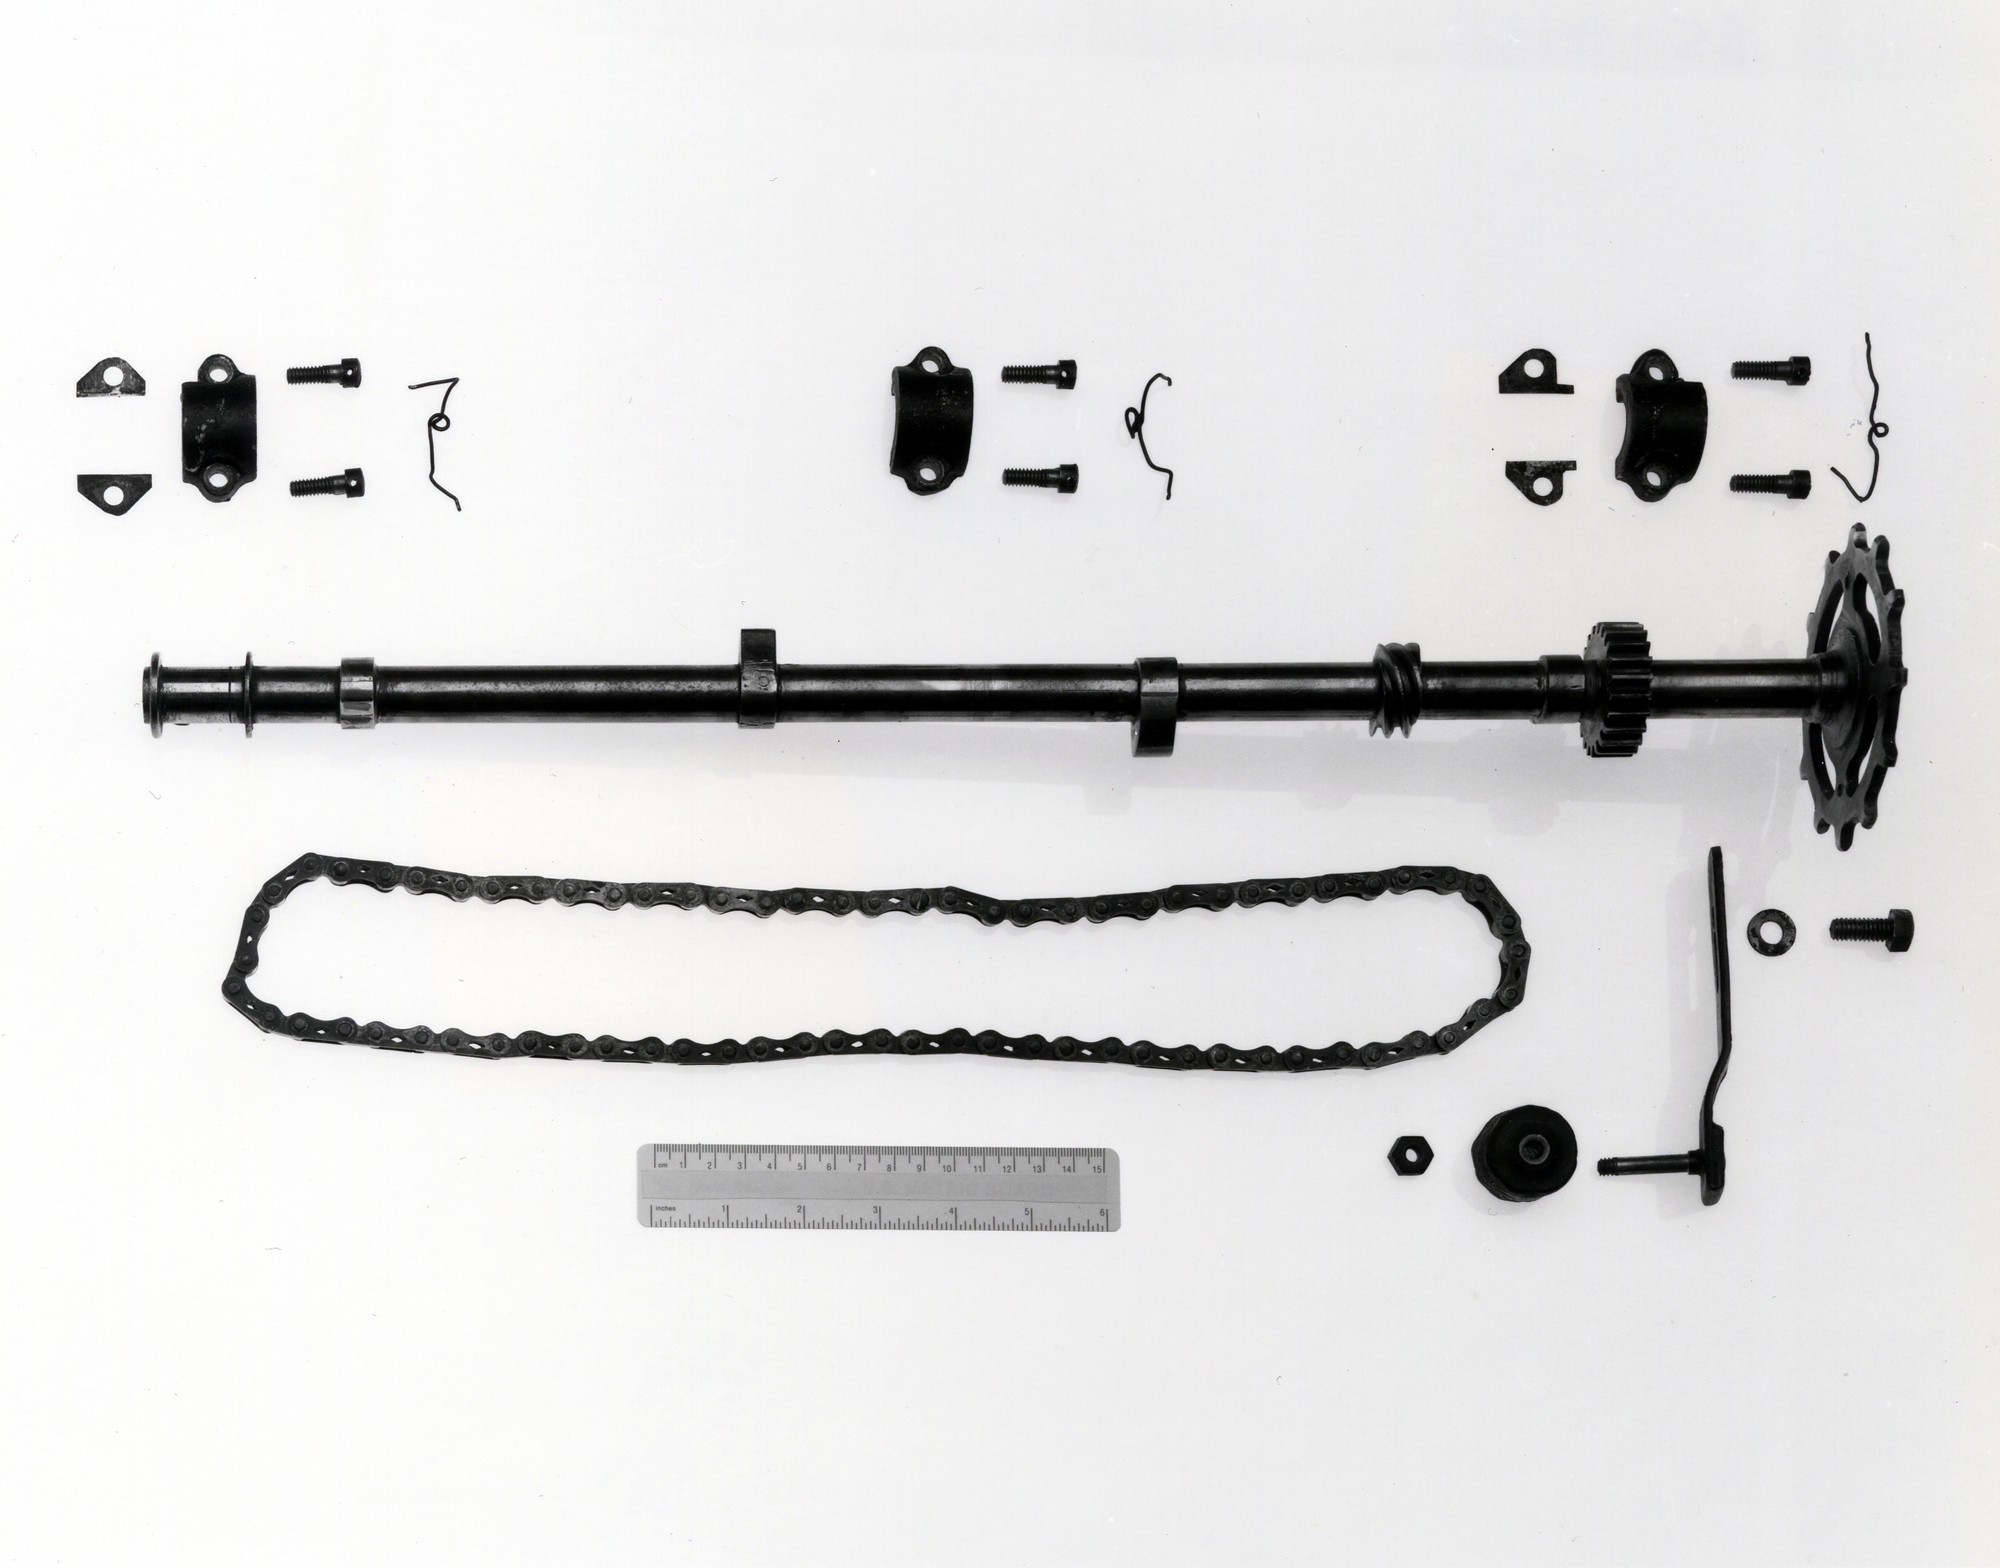 Wright Flyer engine components